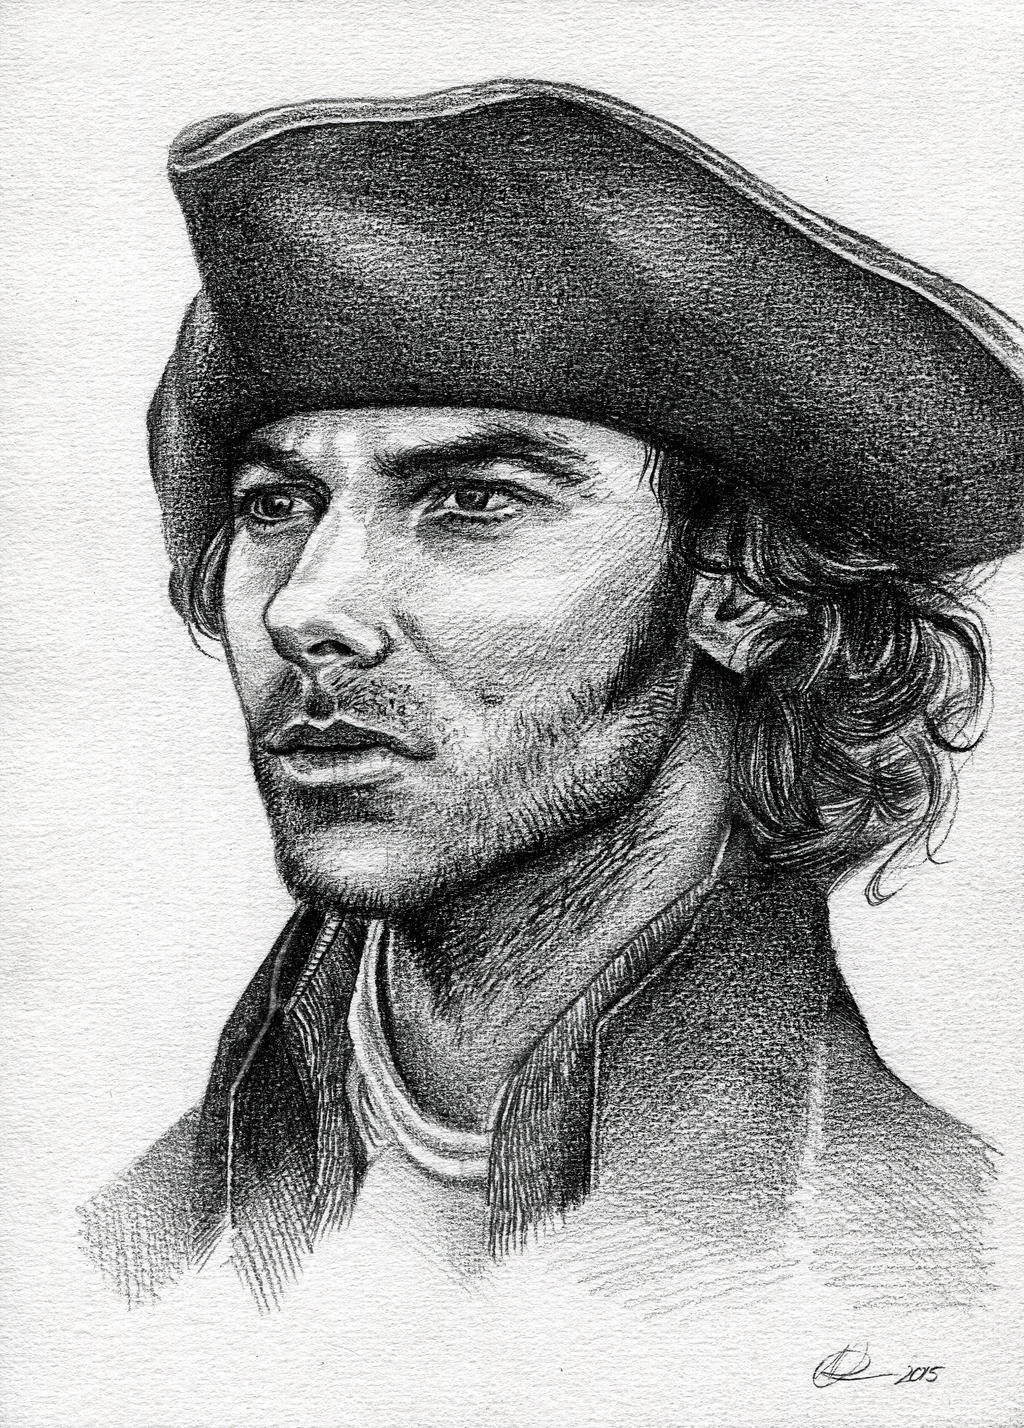 Ross poldark pencil drawing tutorial by nataliebeth